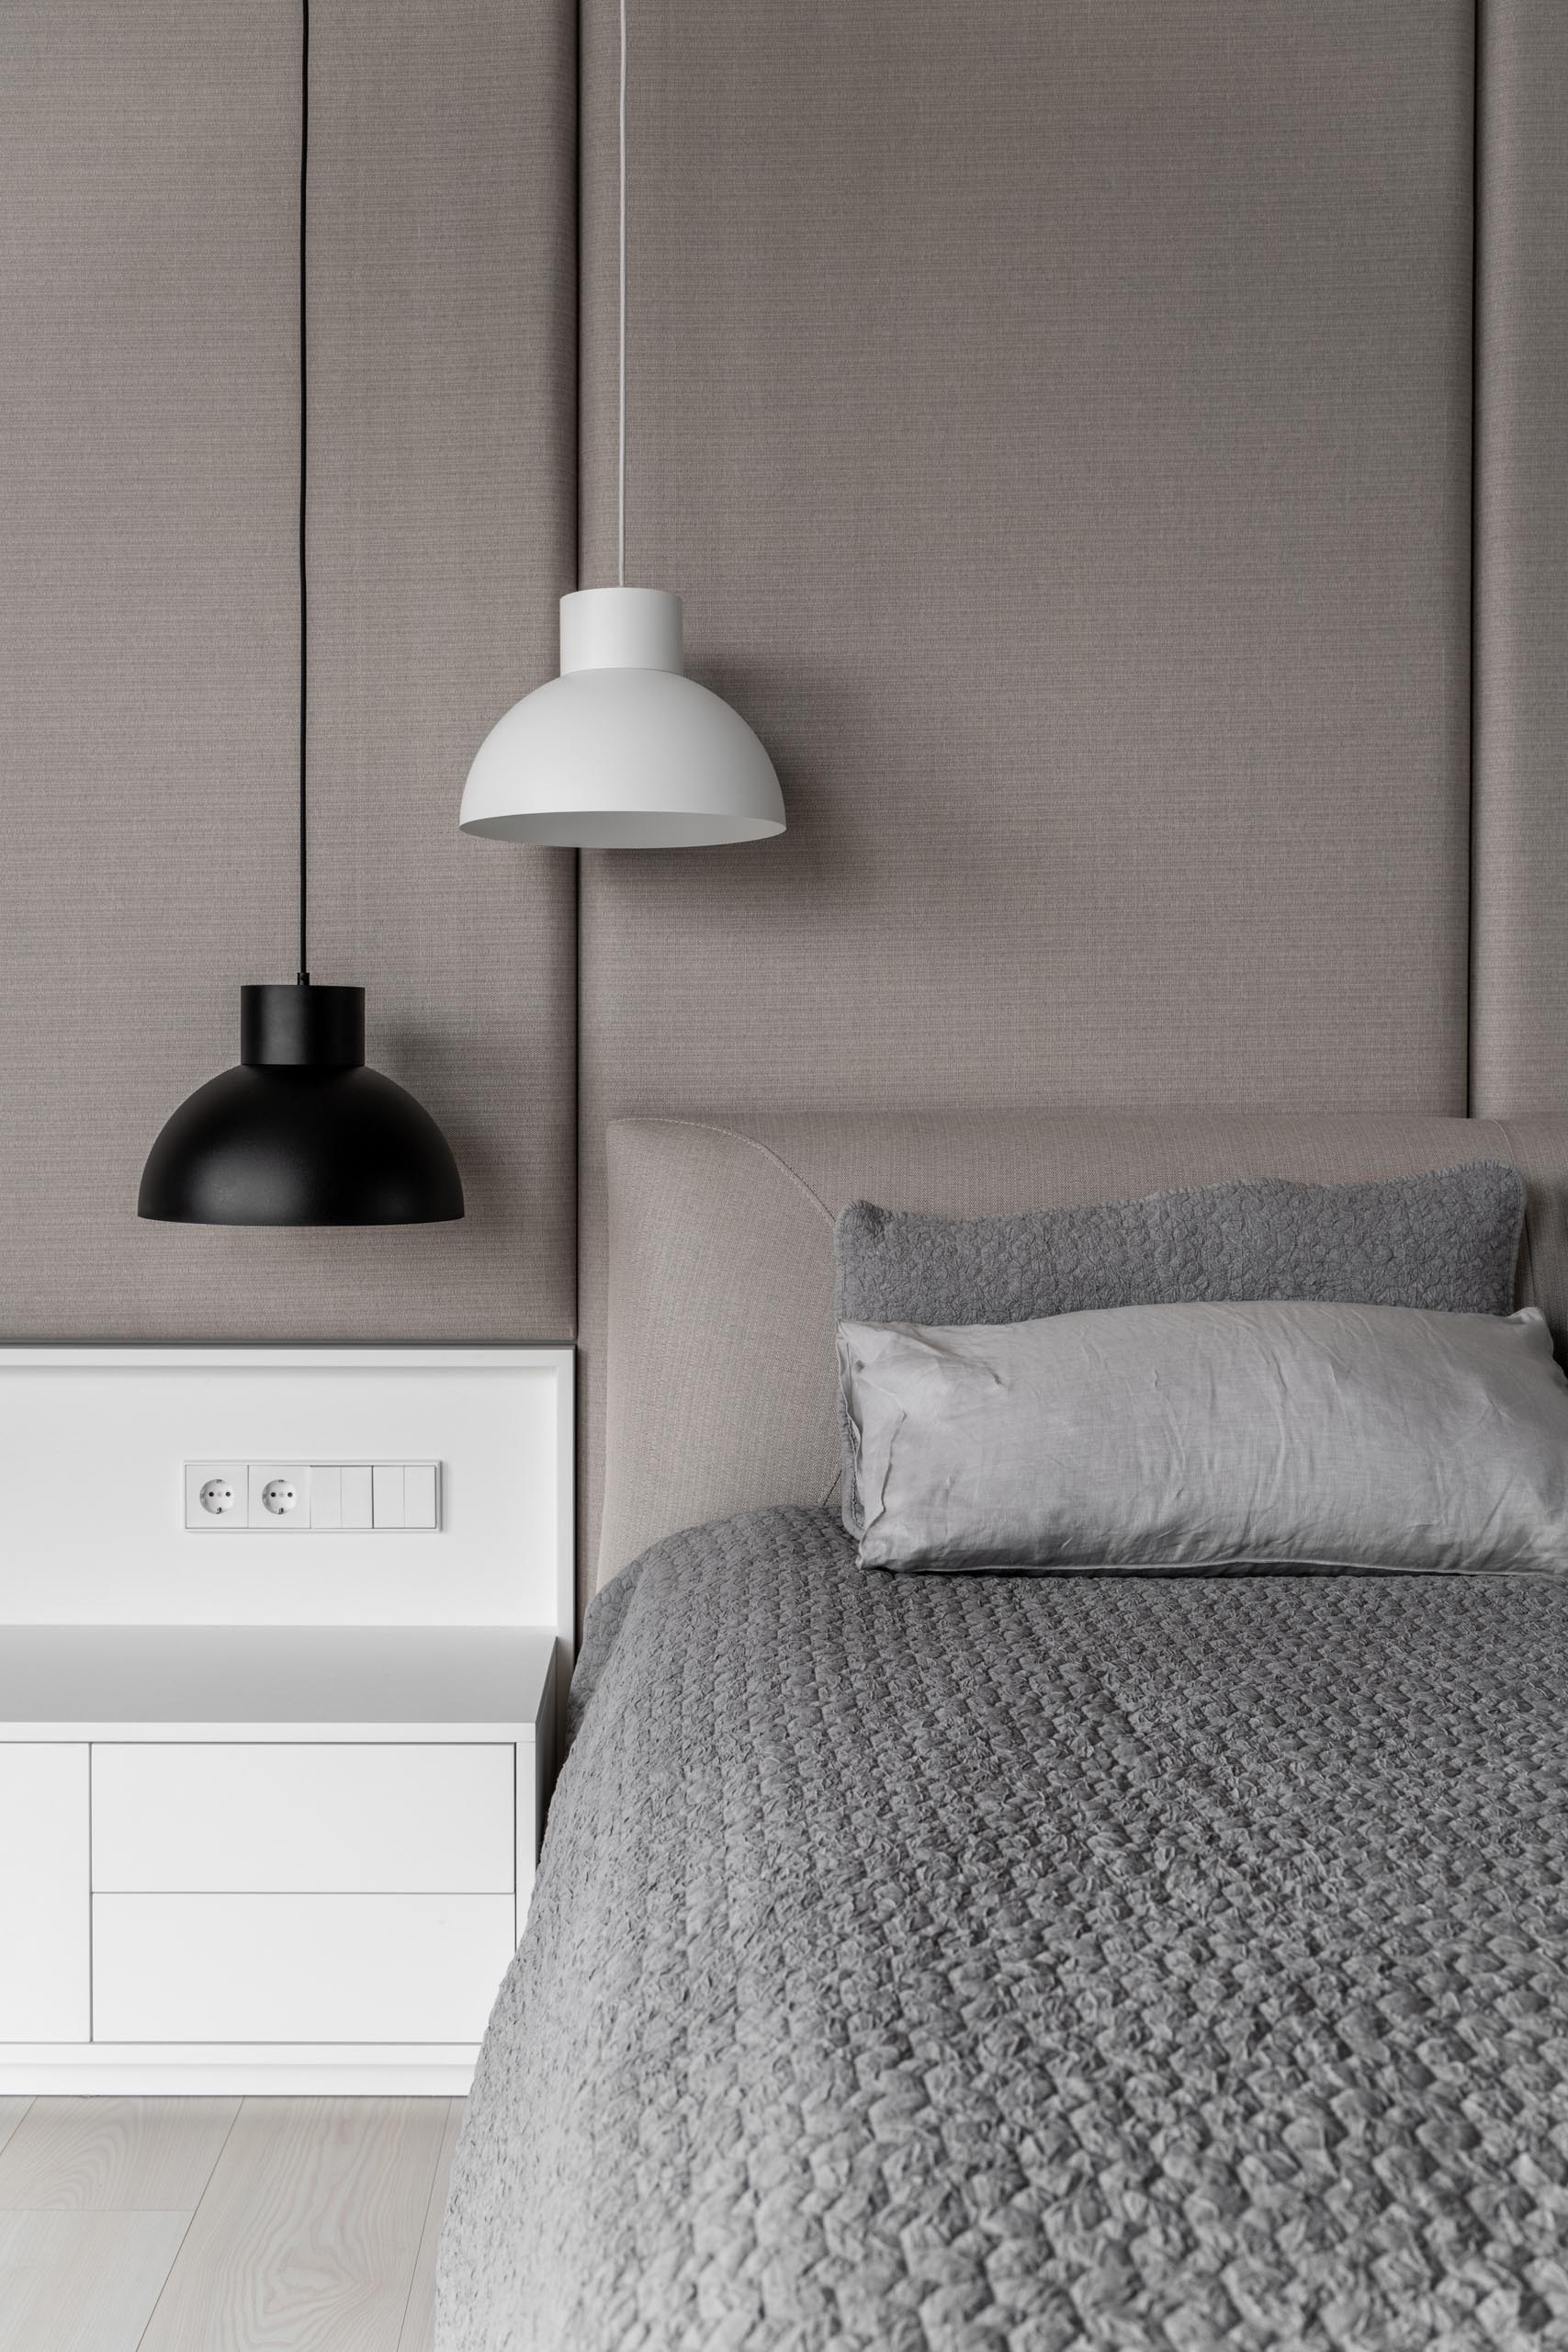 A modern bedroom with a gray and beige color palette, and white and black accents.